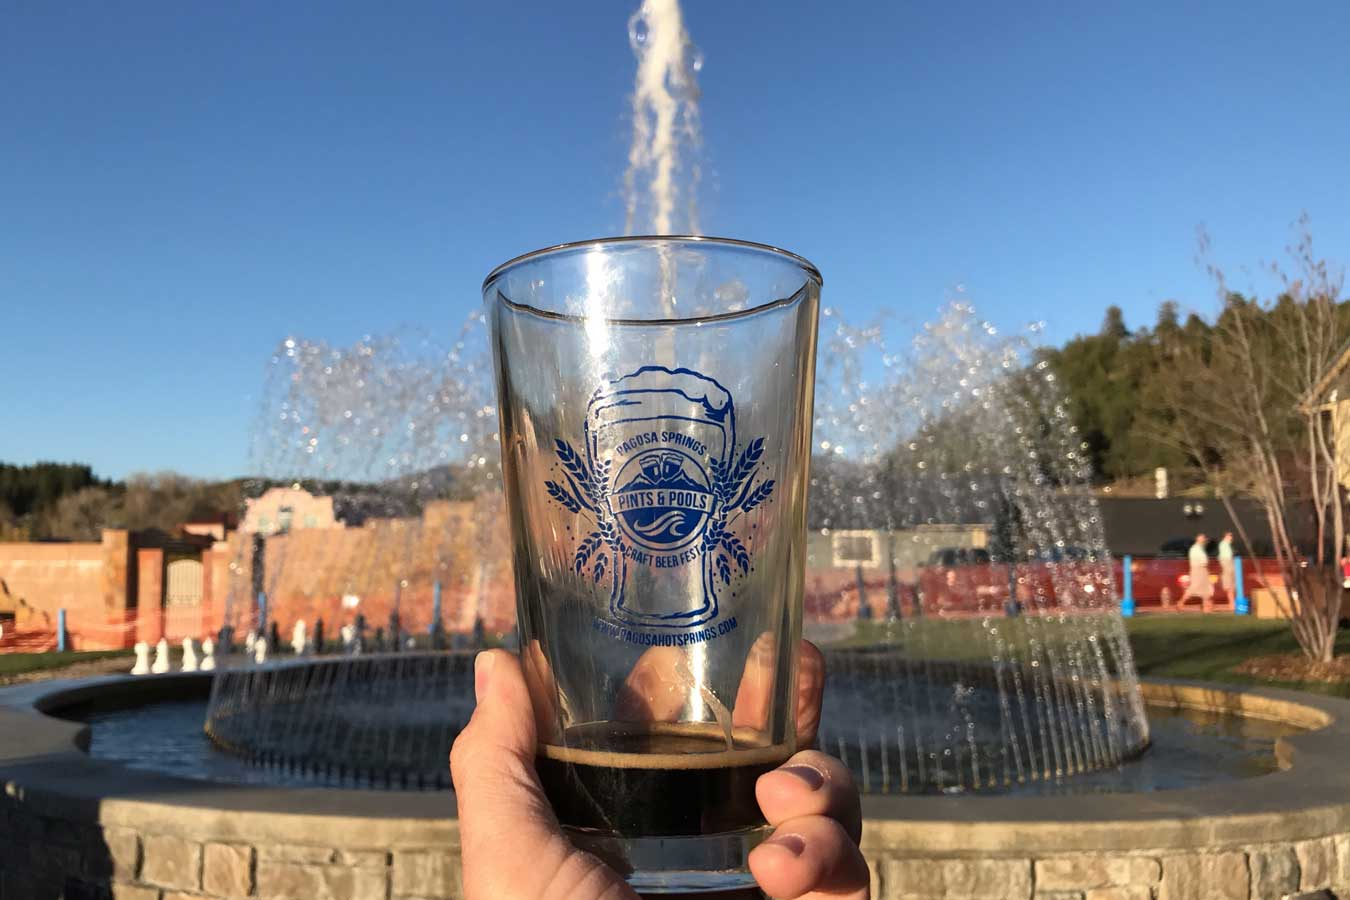 Pints and Pools Craft Beer and Hot Springs in Pagosa Springs